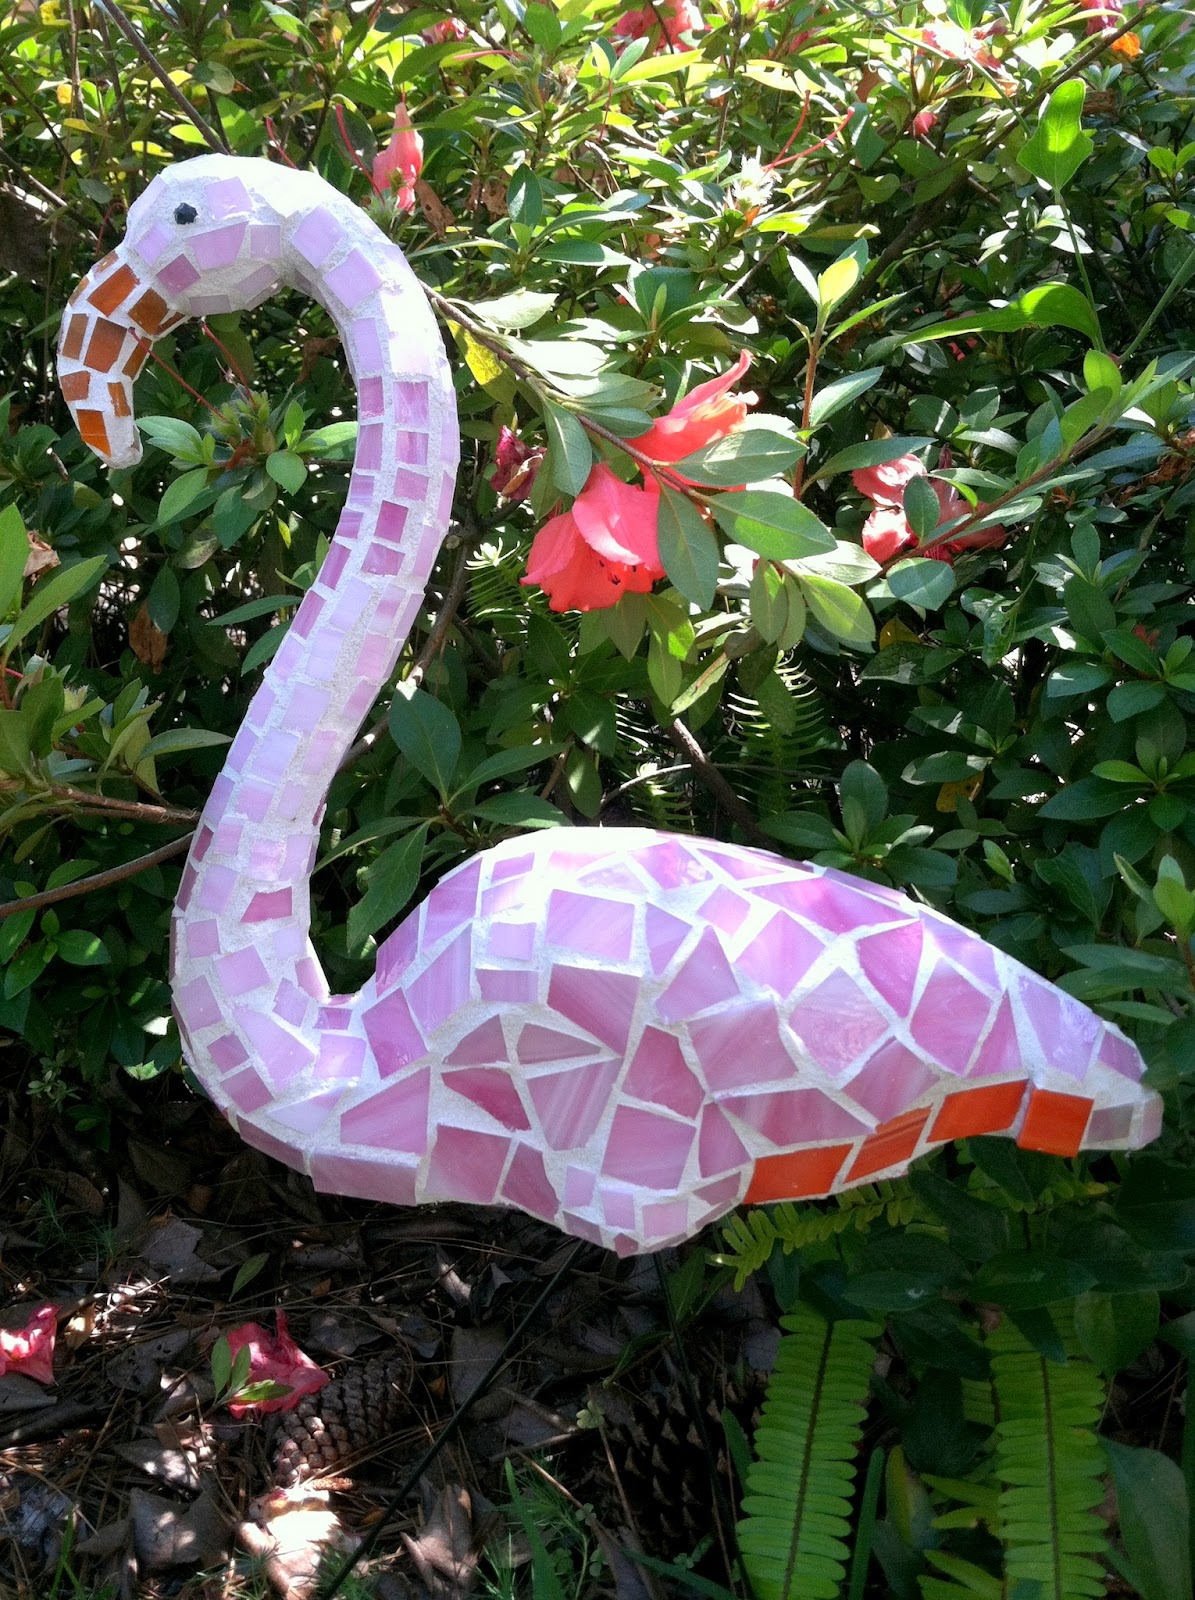 Flamingo garden ornament - Pink Mosaic Flamingo Garden Art Made From Plastic Pink Dollar Store Flamingo